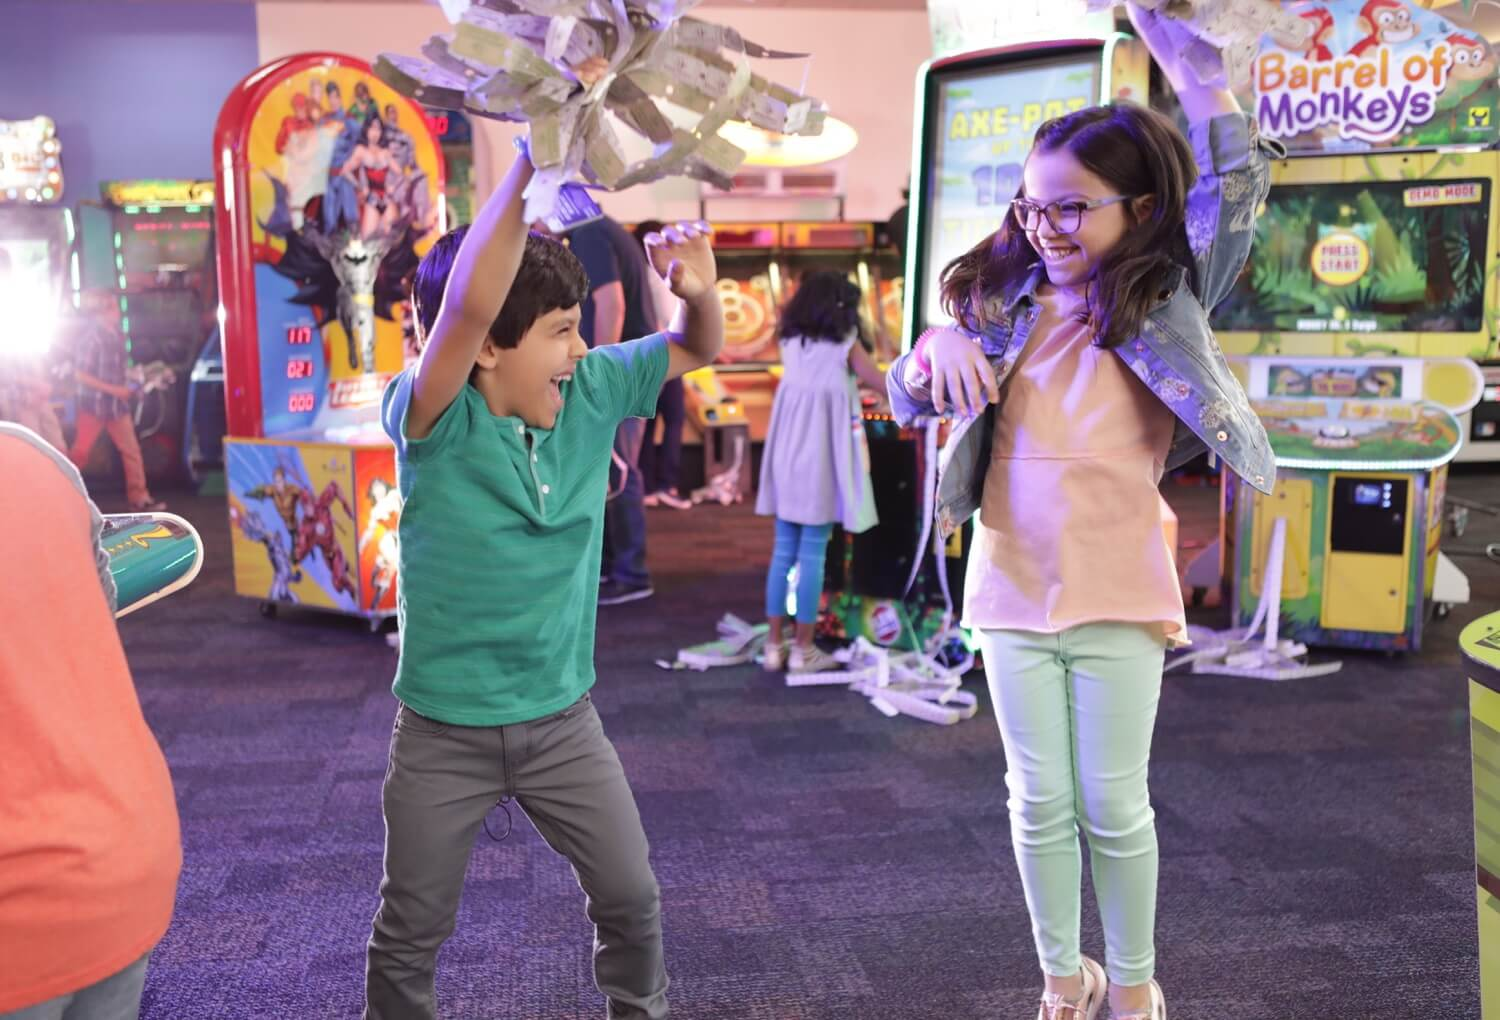 Two kids dancing while holding tickets